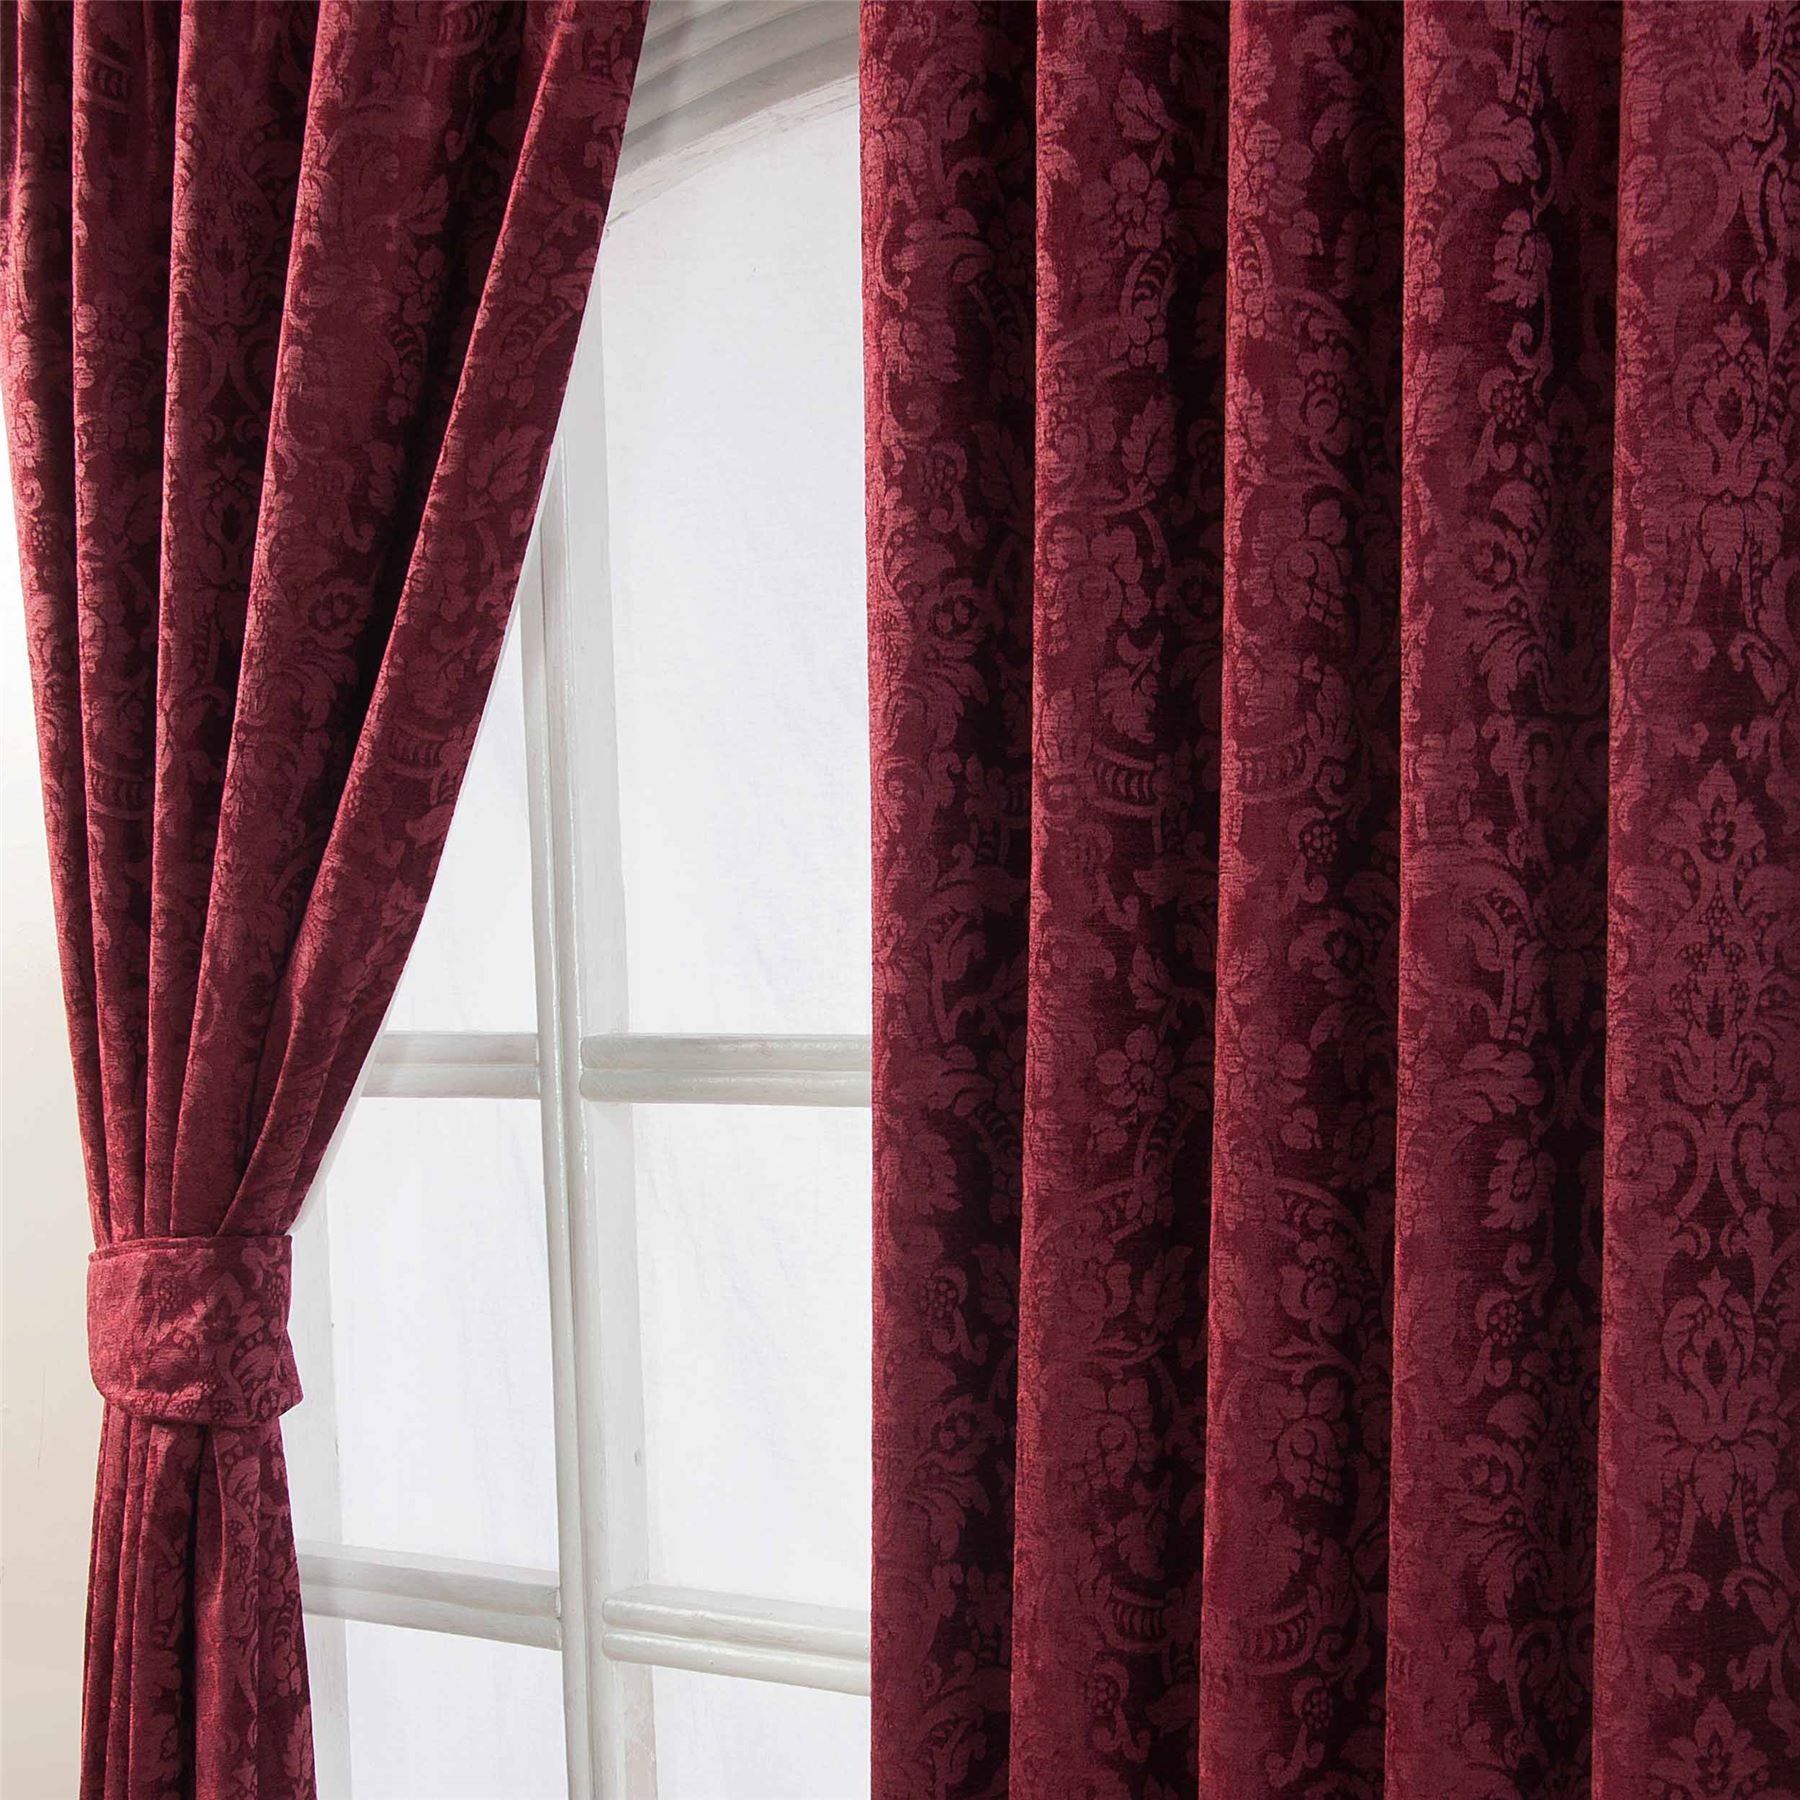 Velvet Jacquard Pencil Pleat Lined Ready Made Curtains Pair Grey - Ready made curtains red